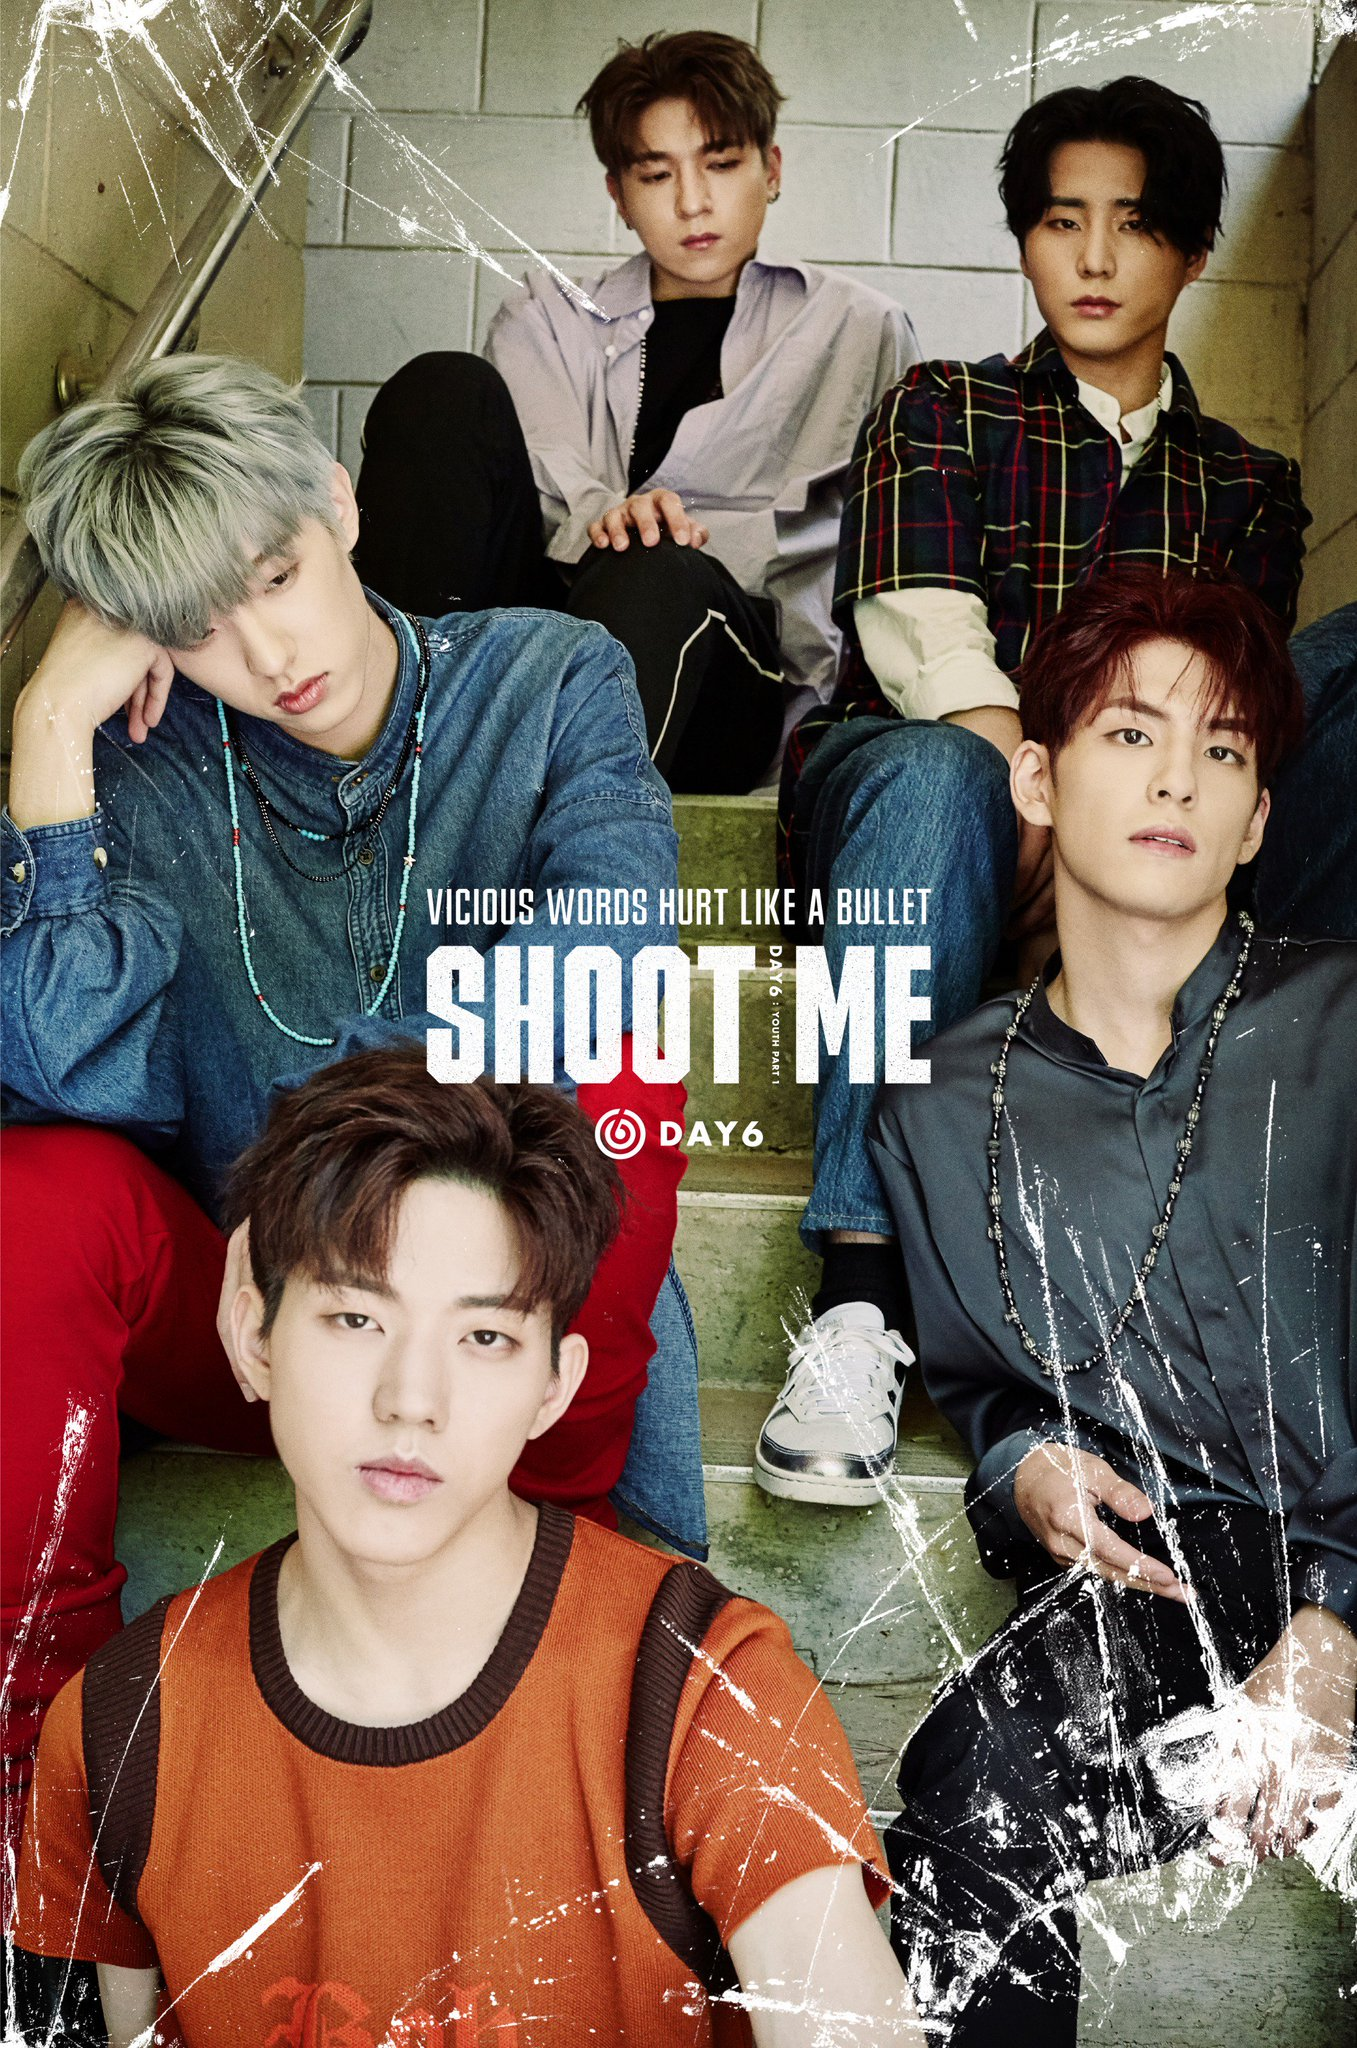 DAY6 <Shoot Me : Youth Part 1>  Group Teaser Image  #DAY6 #데이식스 #ShootMe #YouthPart1 https://t.co/QprZ0j1Xrw